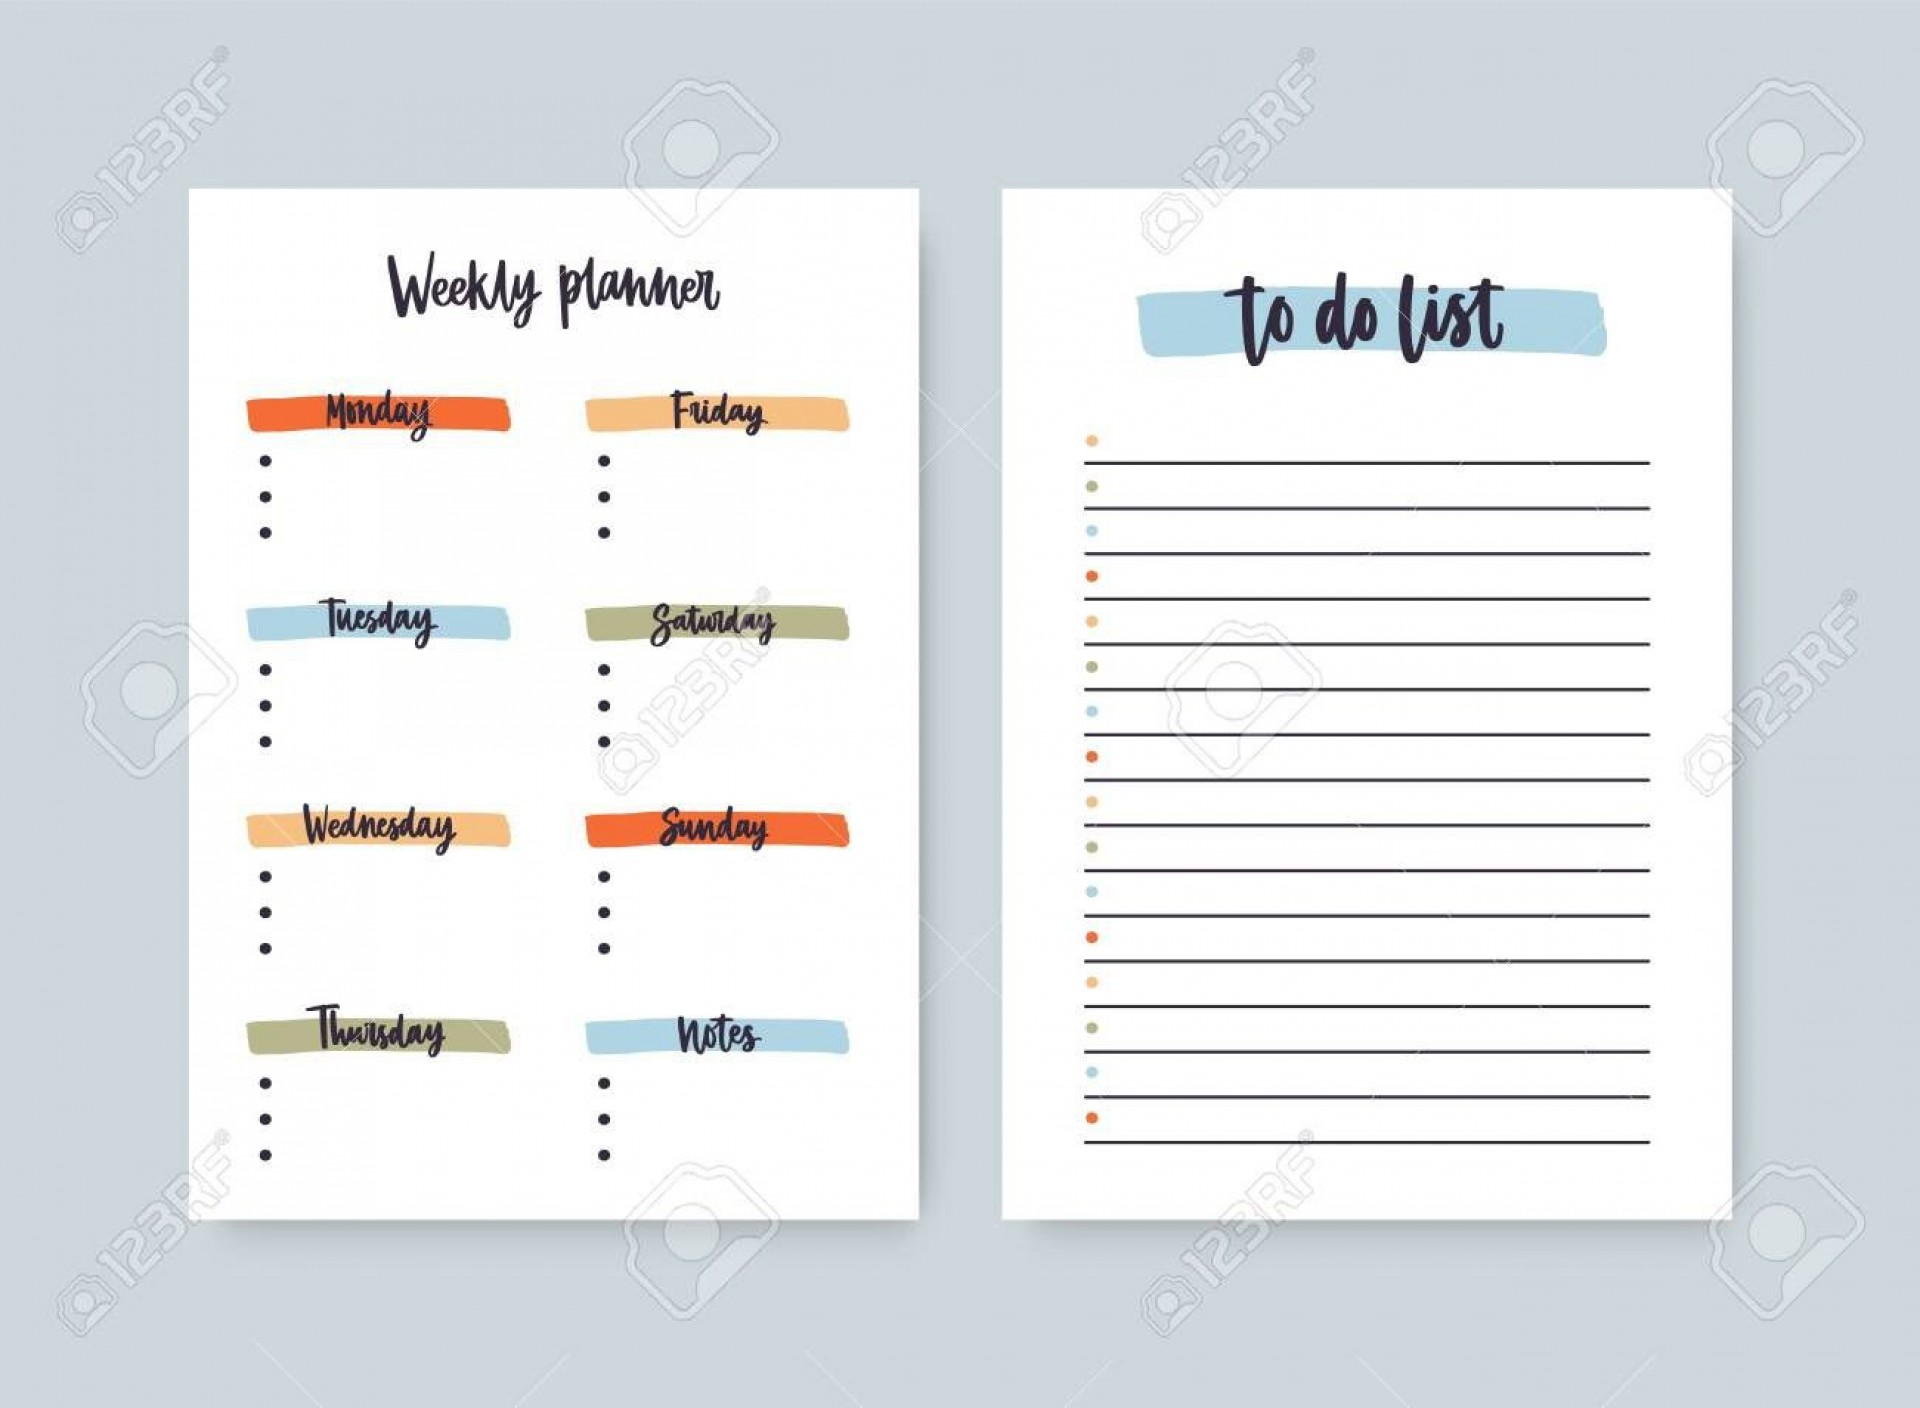 003 Stunning Daily To Do List Template Sample  Templates Free1920